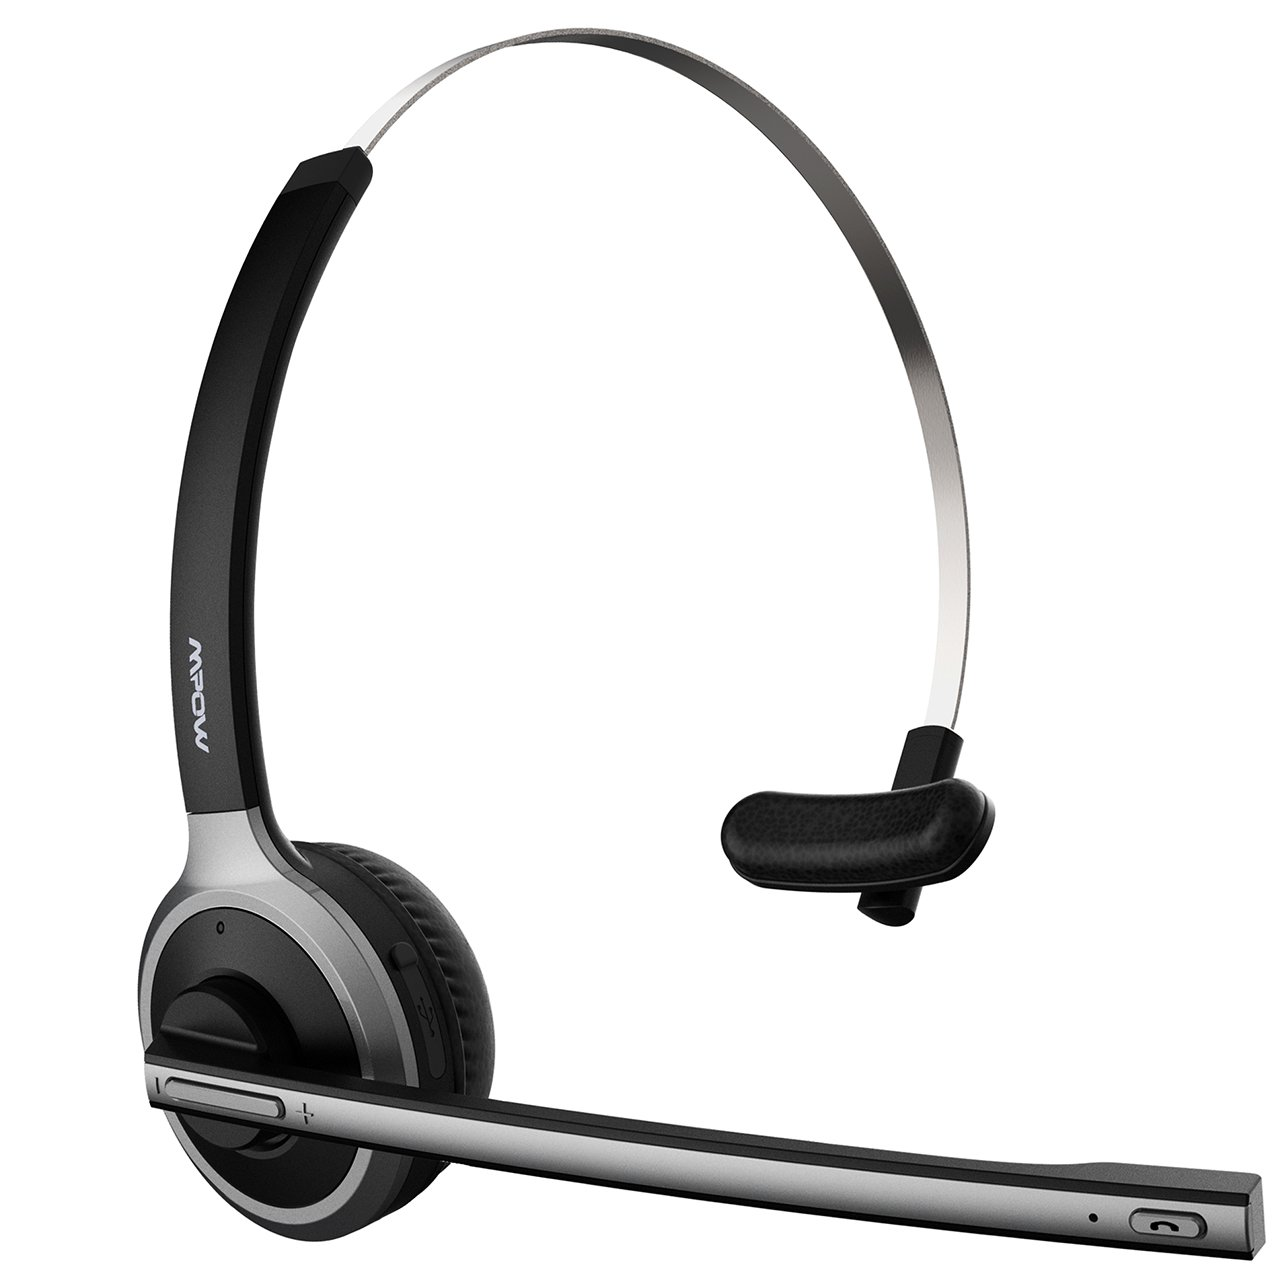 Mpow Upgraded Version Bluetooth Headset/Truck Driver Headset, Wireless Over Head Earpiece with Noise Reduction Mic for Phones, Skype, Call Center, Office (Support Media Playing)